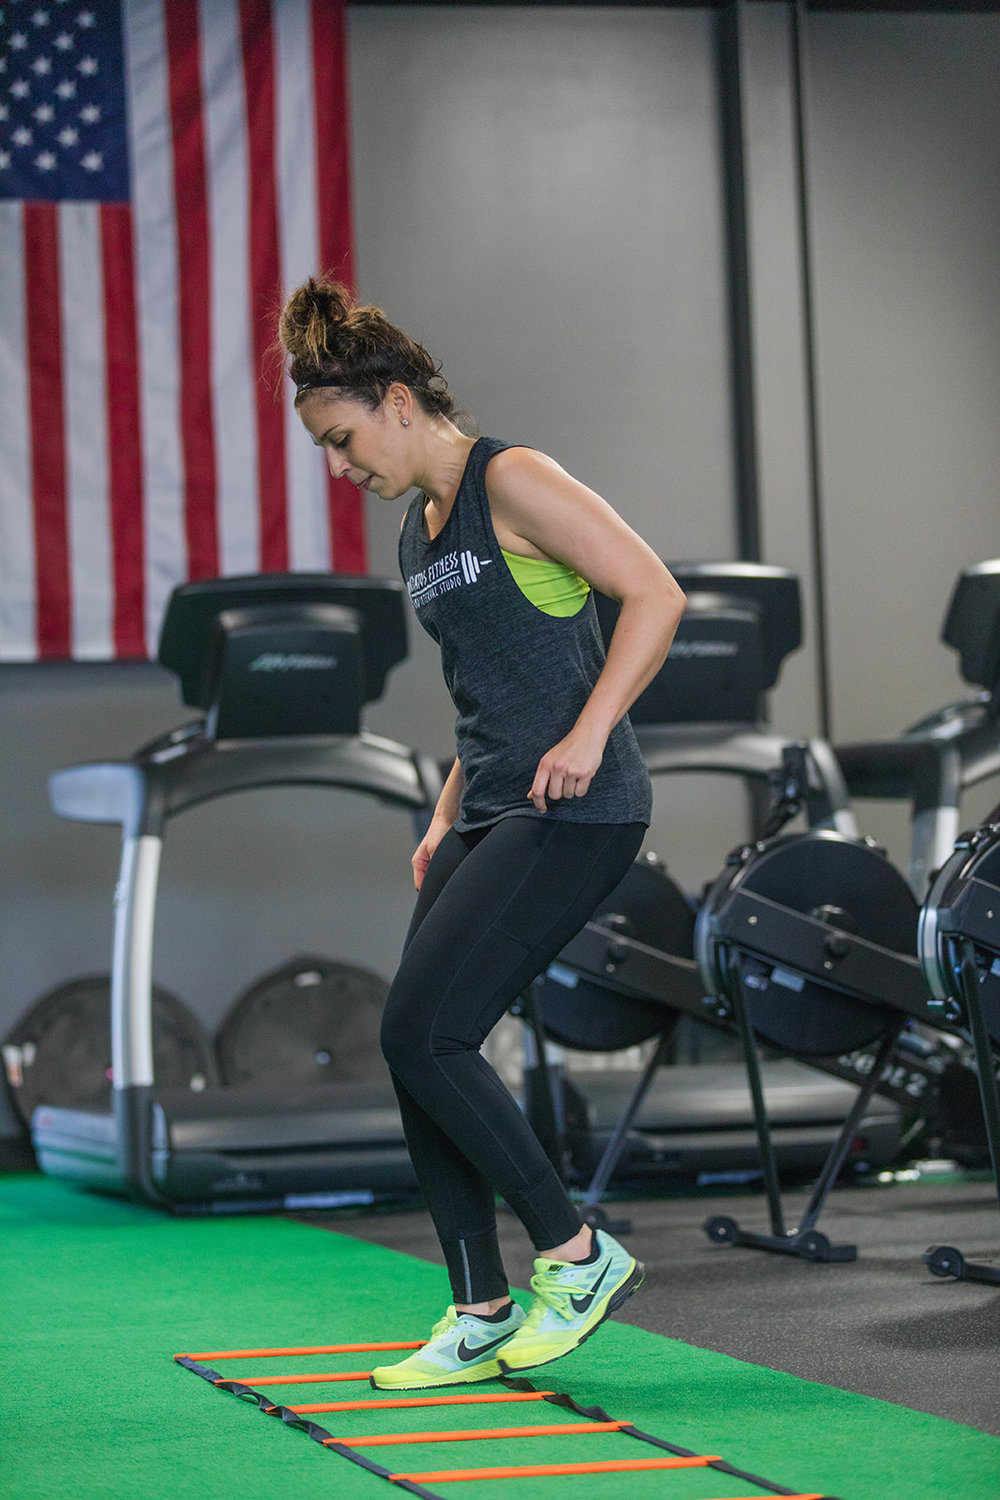 all access, per session & yoga only packs - We offer 1:1 Personal Training, Partner Training, and Group Training. We can create any workout plan that works for your schedule and budget!We also offer a wide variety of classes for all fitness levels including: Yoga, Hot Yoga, High Intensity Interval Training, KRANK (Cycling), Barre, Strength Training, TRX/Kettlebell, Boot Camps, & More!CHOOSE THE PLAN THAT BEST FITS YOUR NEEDS & BUDGET